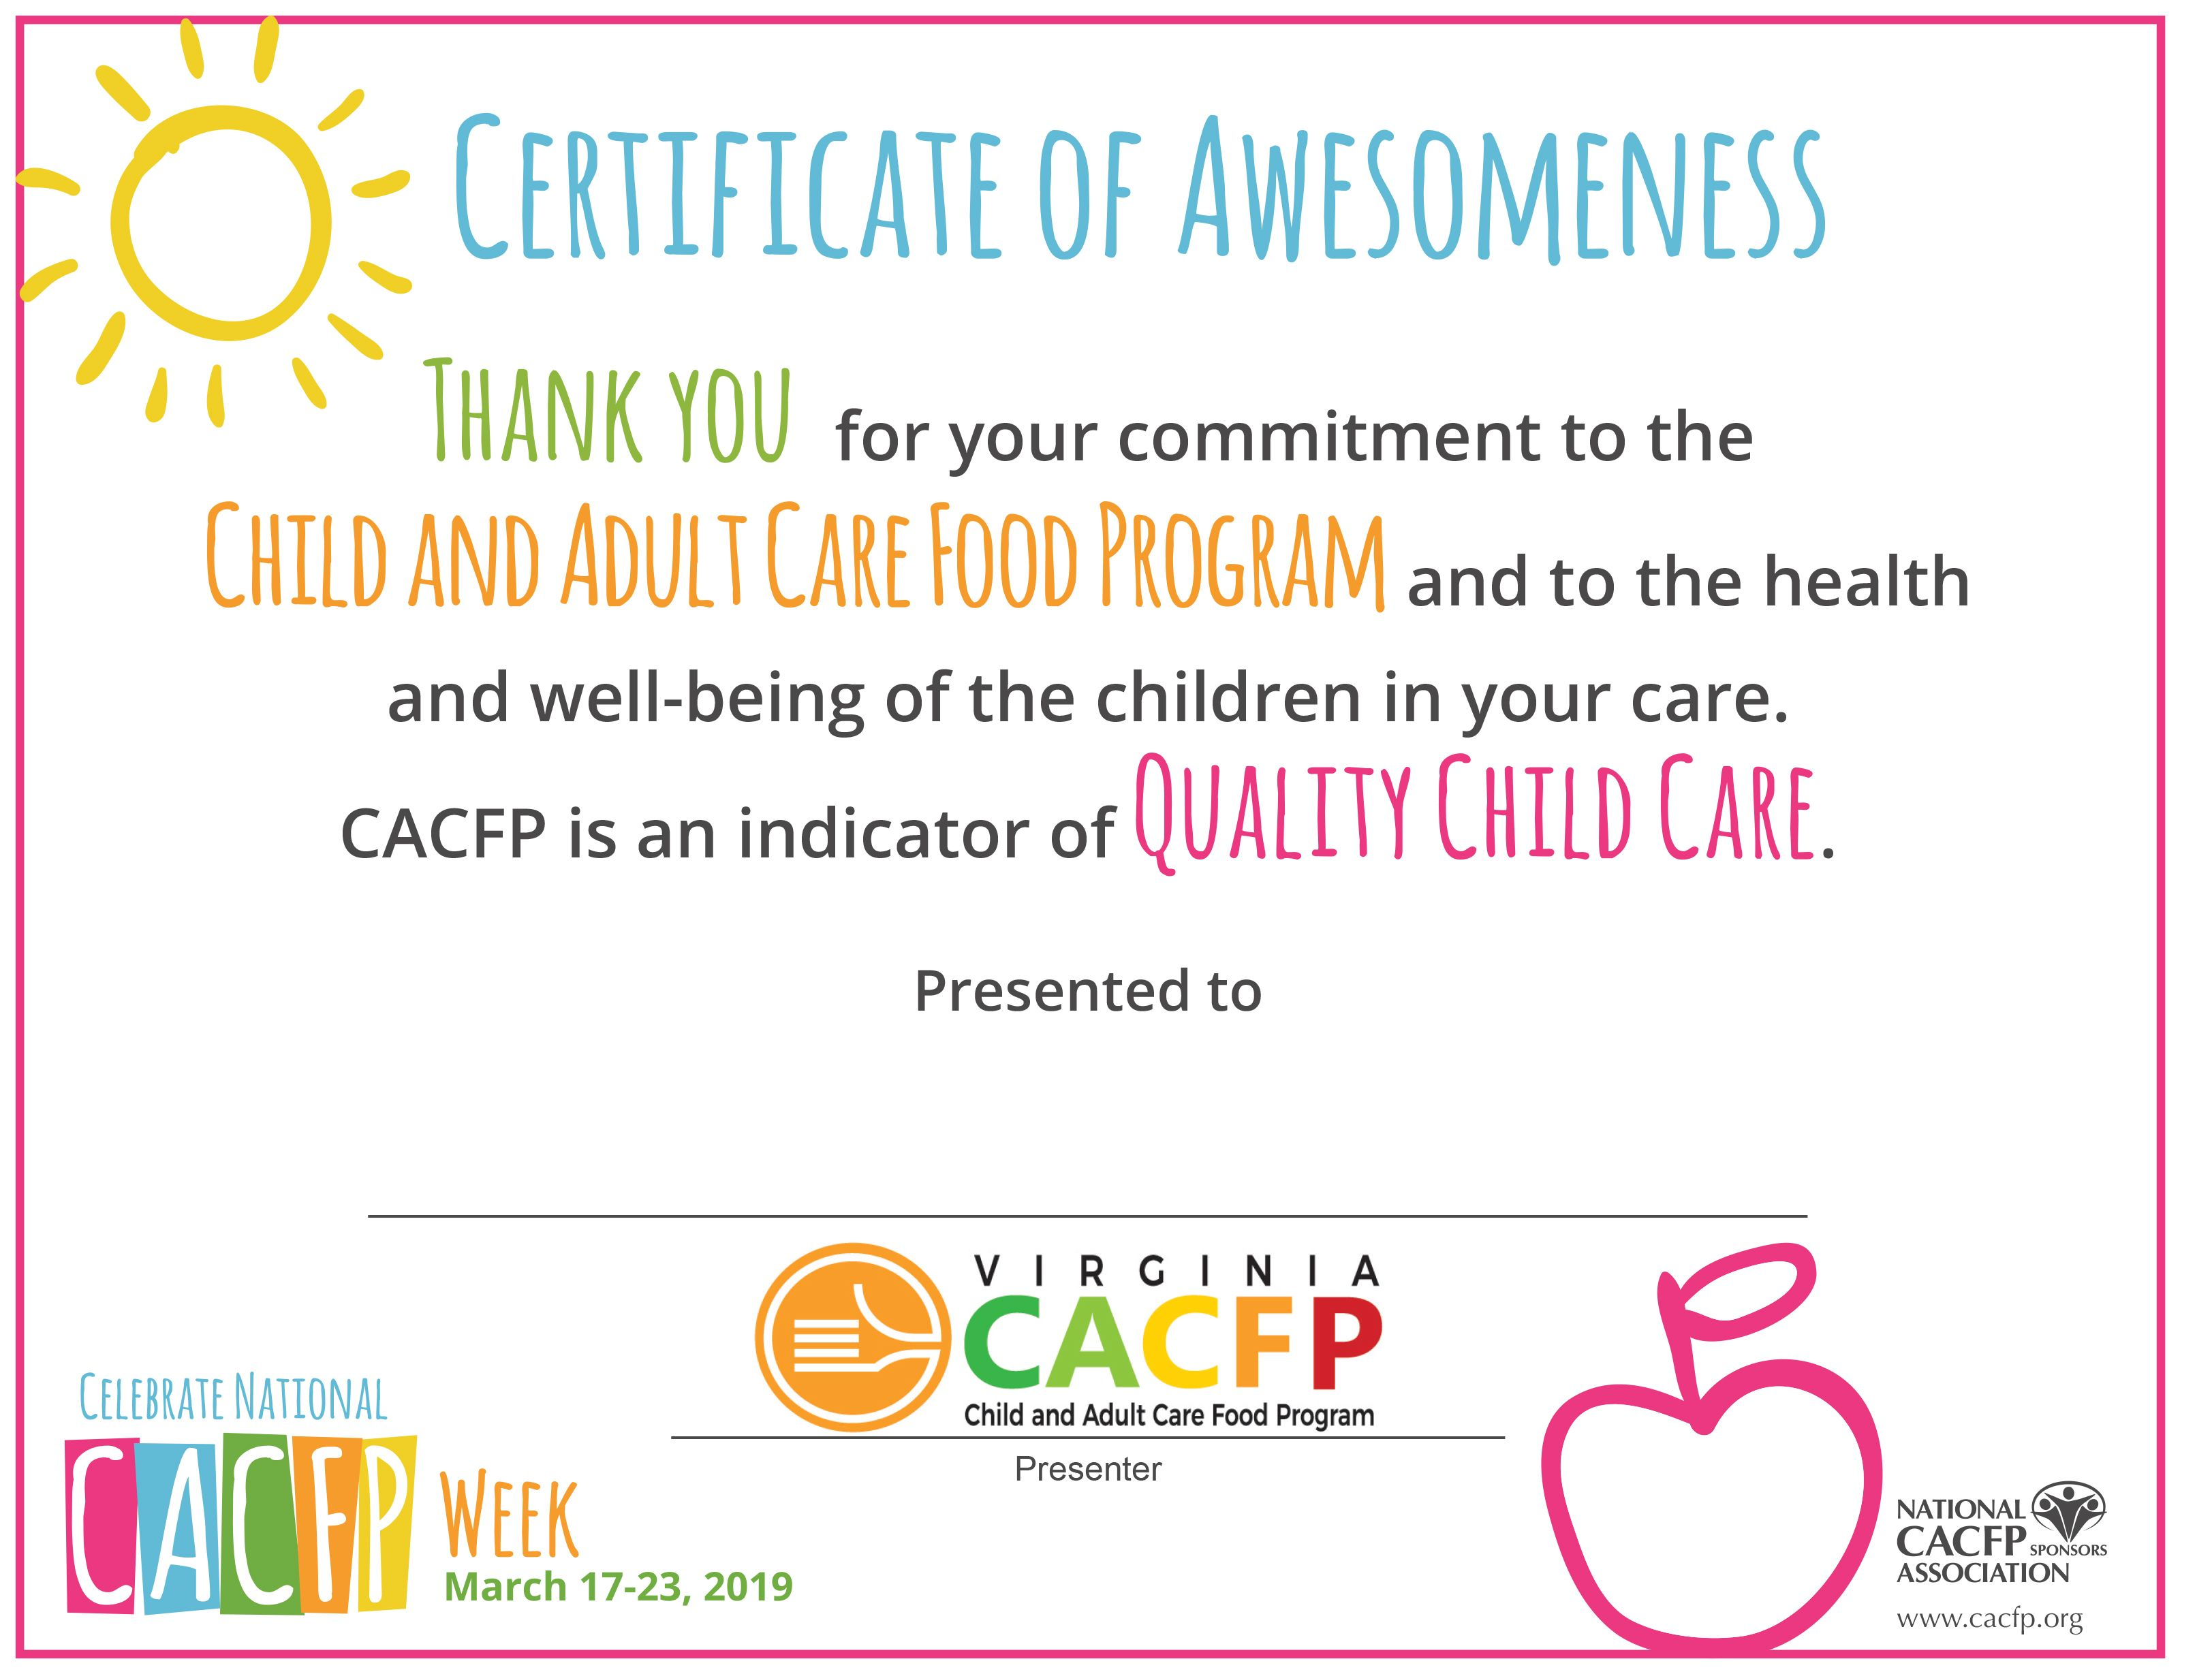 Do you know a cacfp provider who deserves some recognition